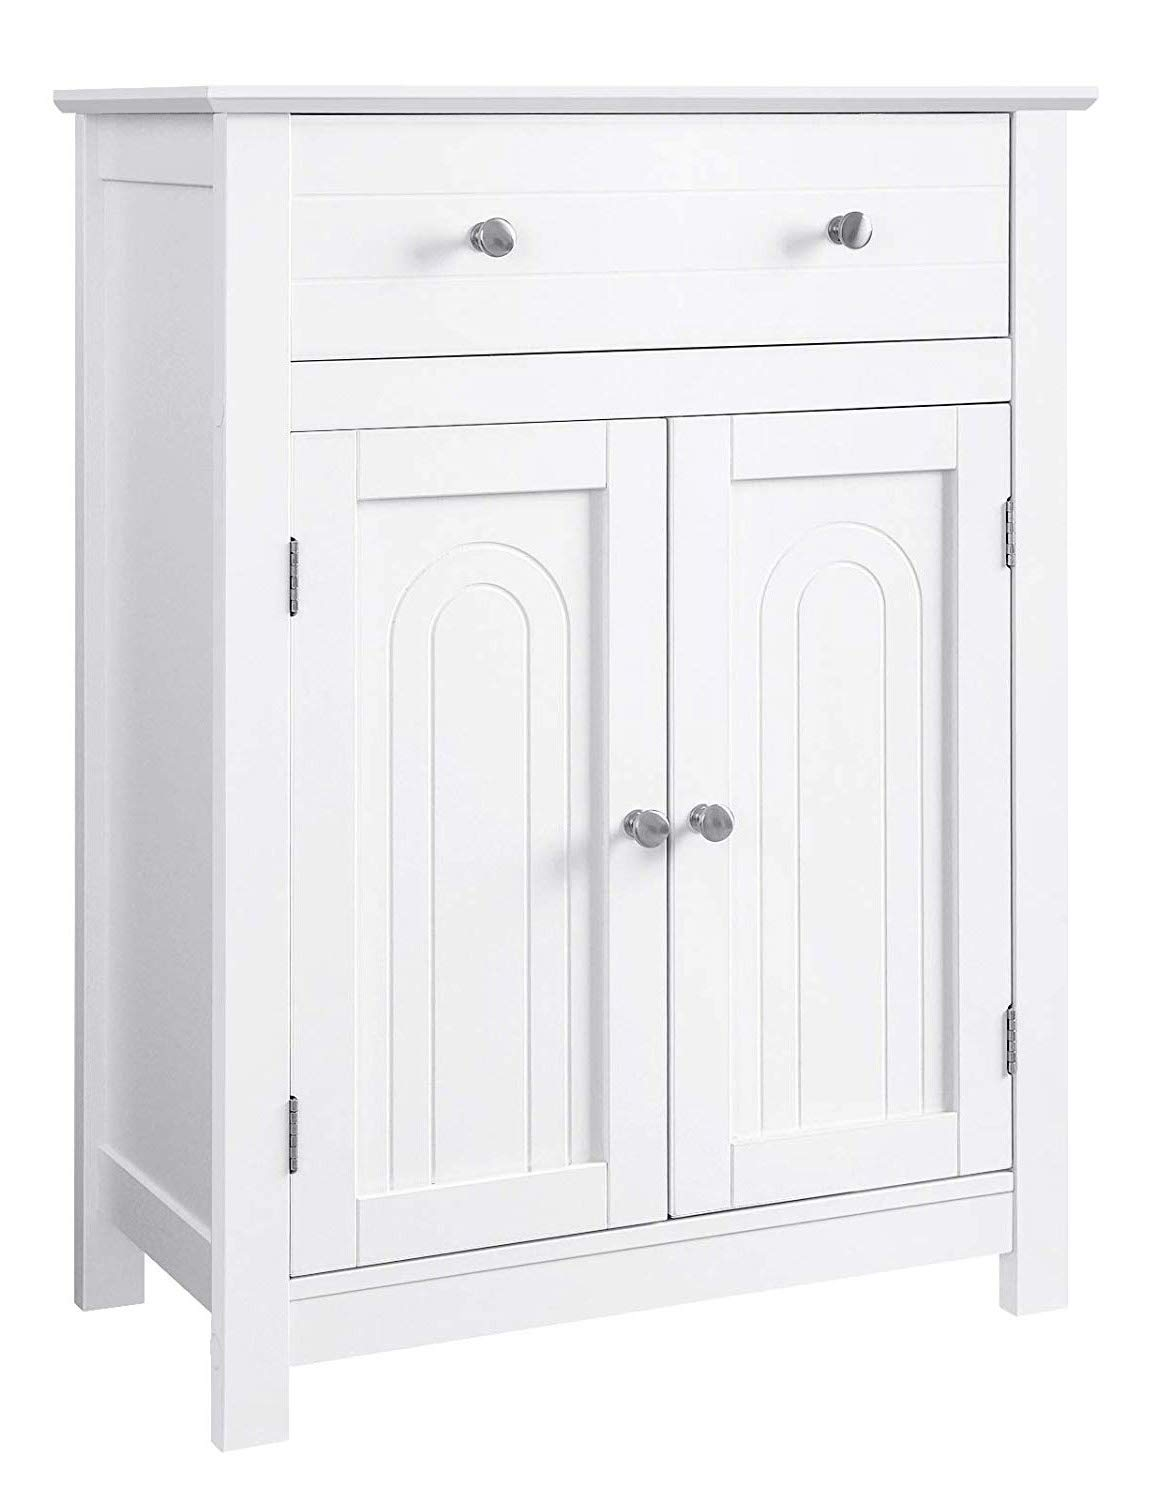 VASAGLE Free Standing Bathroom Cabinet with Drawer and Adjustable Shelf, Kitchen Cupboard, Wooden Entryway Storage Cabinet White, 23.6 x 11.8 x 31.5 Inches by VASAGLE